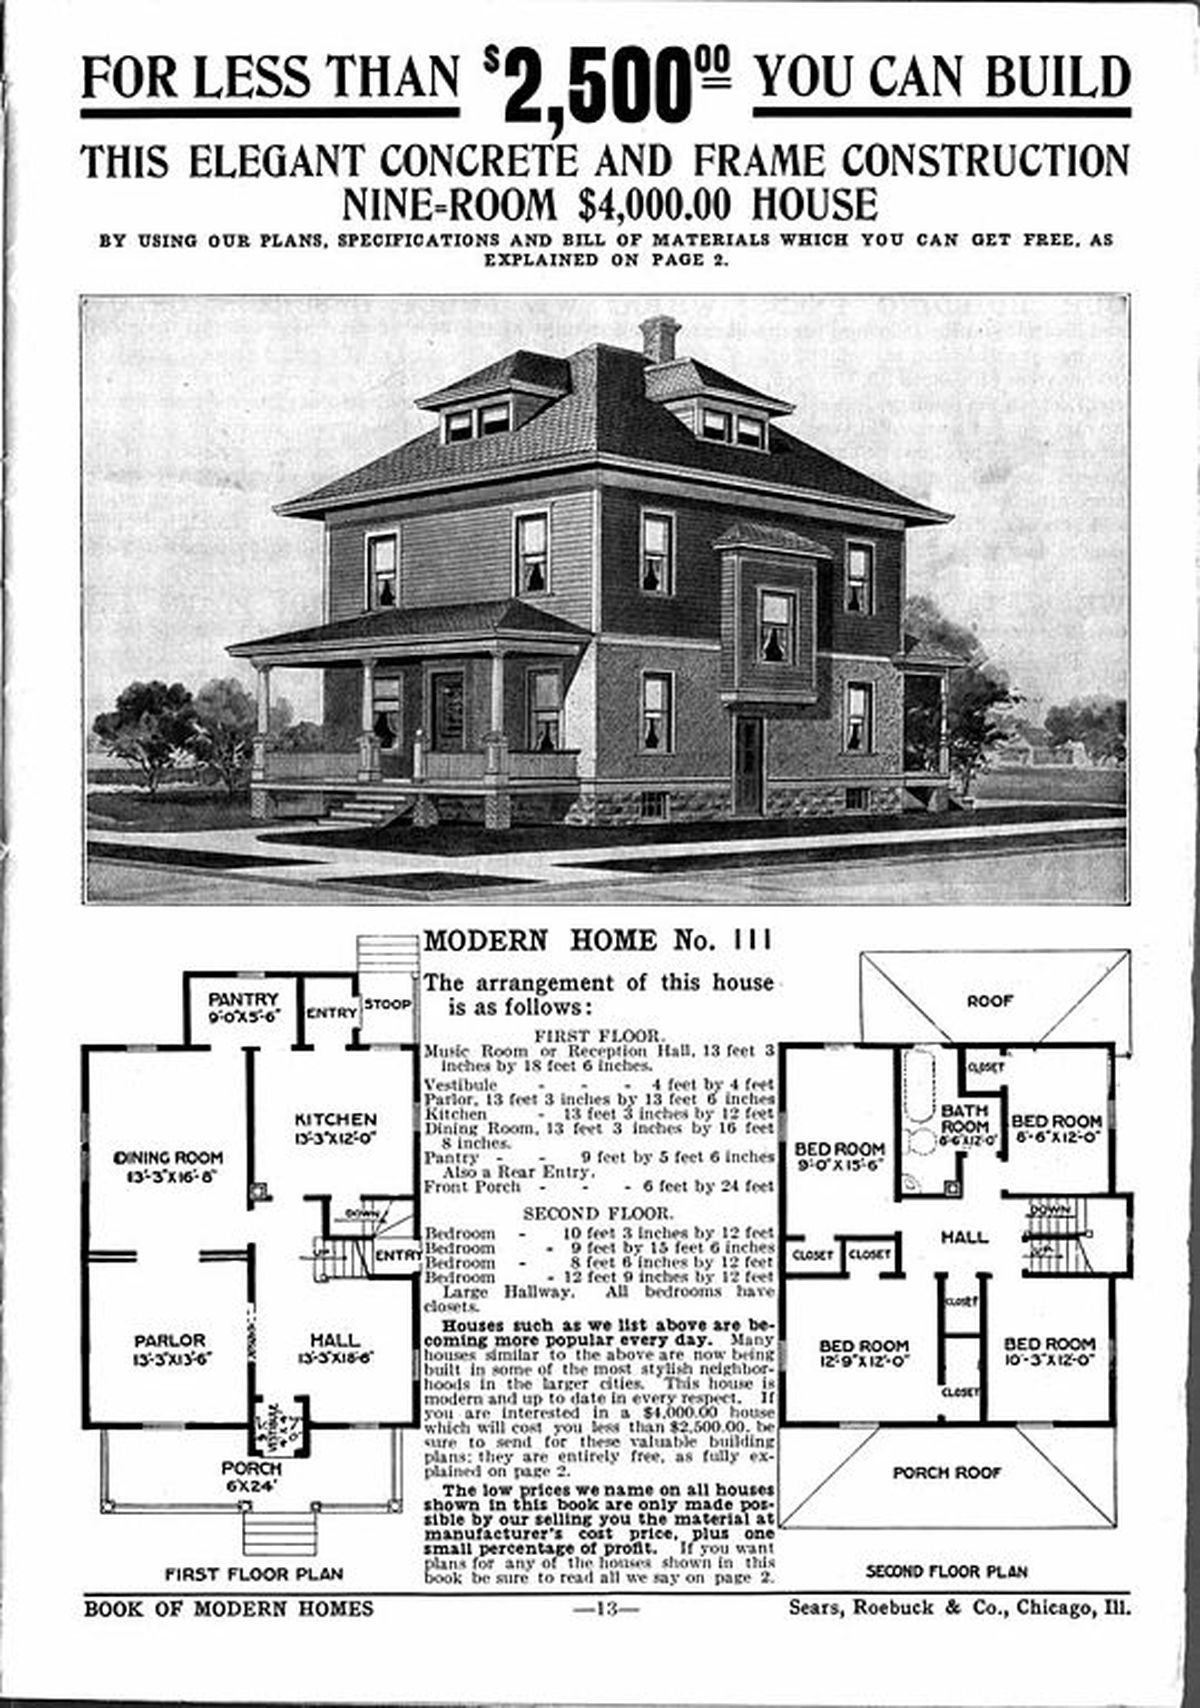 3 American Foursquare houses you can buy right now - Curbed on golf house design, red house design, rome house design, ninja house design, pinterest house design, tumblr house design, dragon house design, youtube house design, catholic house design, charleston house design, prairie house design, instagram house design, american foursquare house design, united kingdom house design, bungalow house design, colonial house design, four bedroom house, four square garden design, craftsman house design,